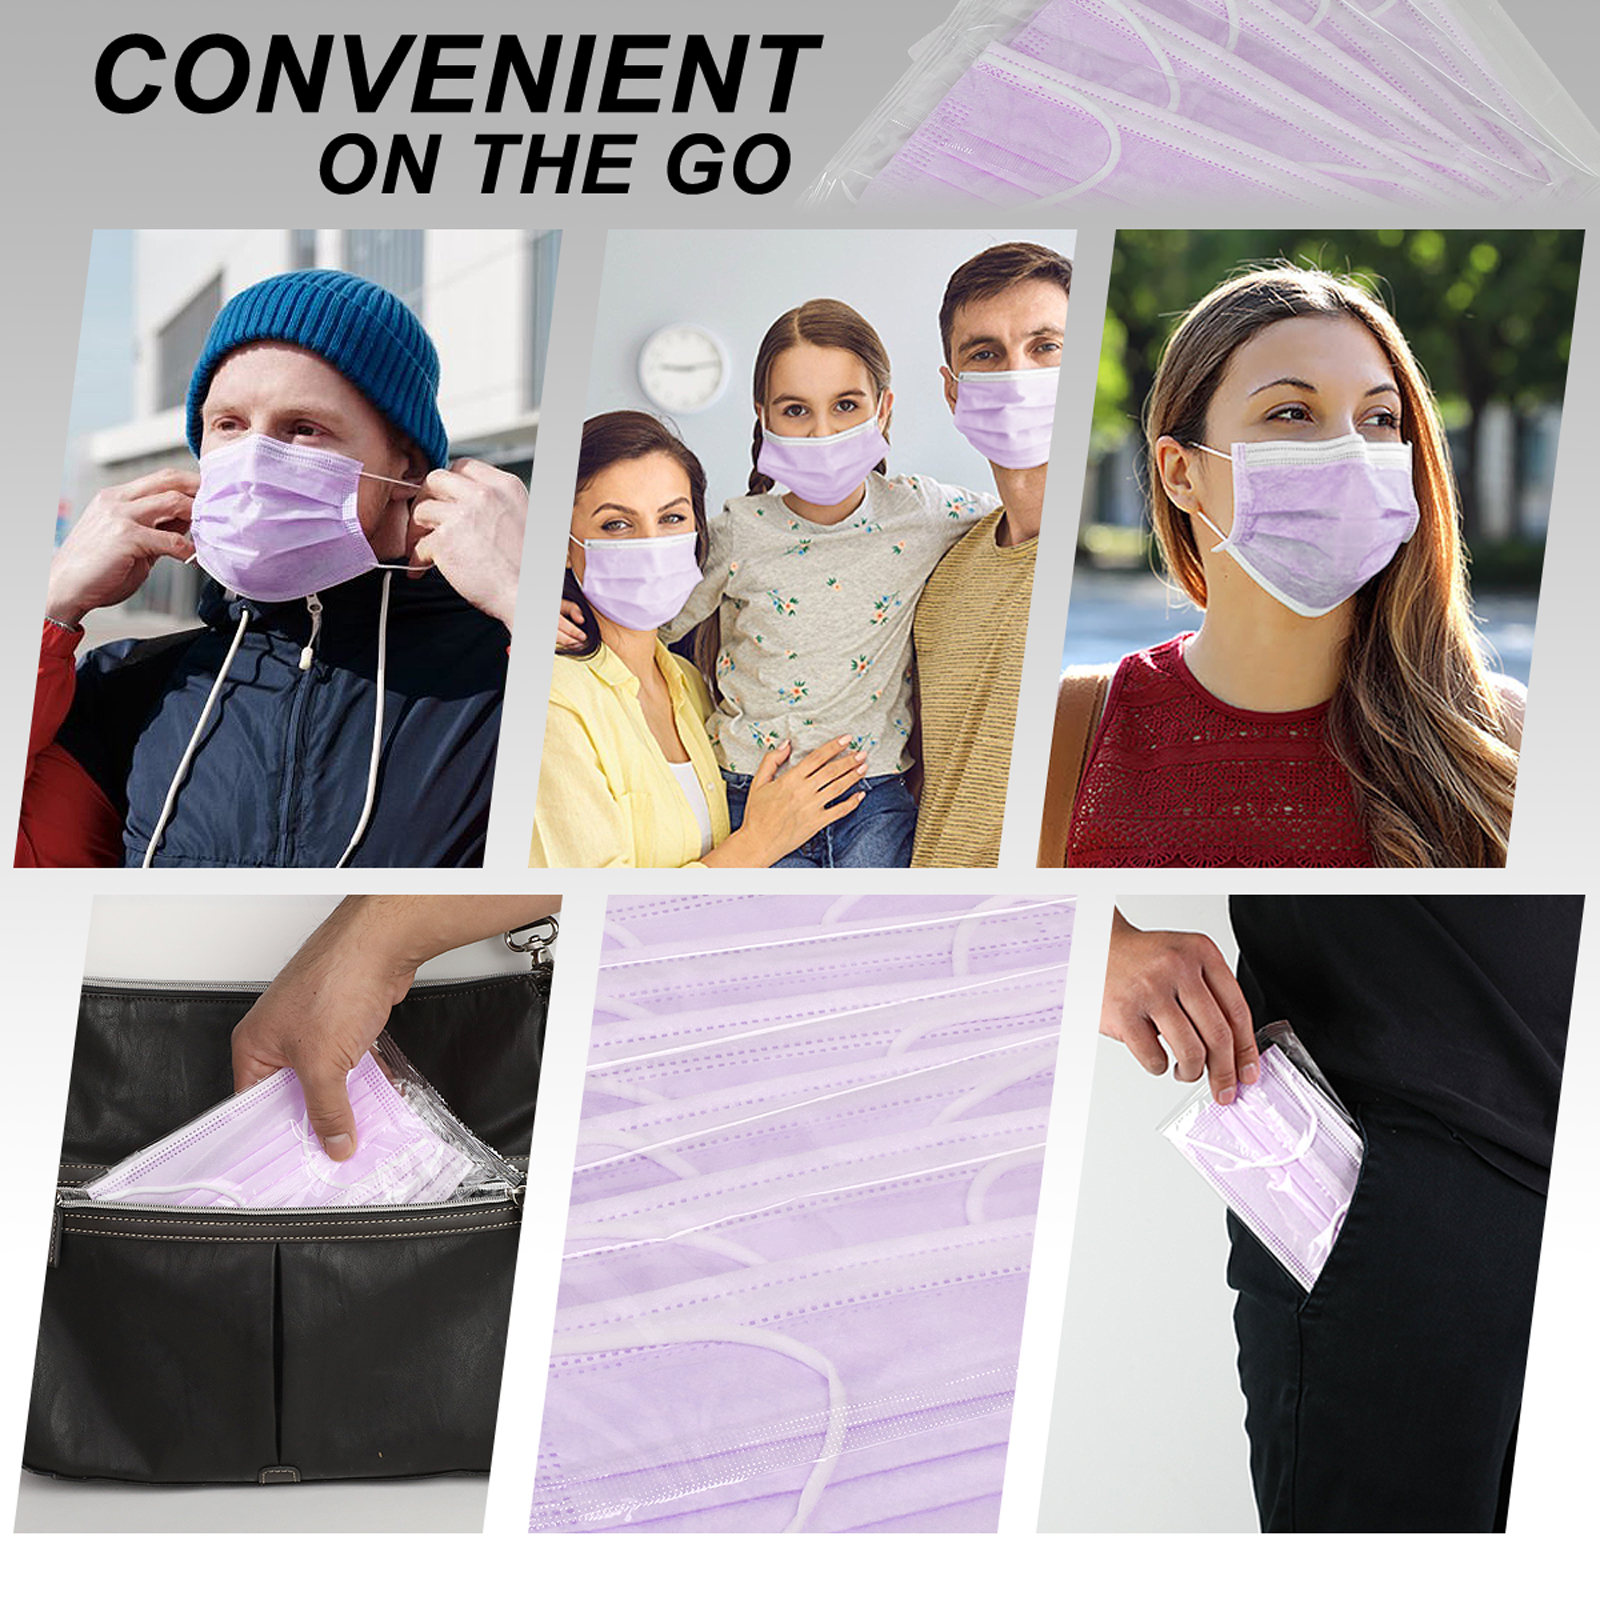 [Individually Wrapped] 50 Pc PURPLE Disposable Face Mask 3-Ply Non Medical Cover 4